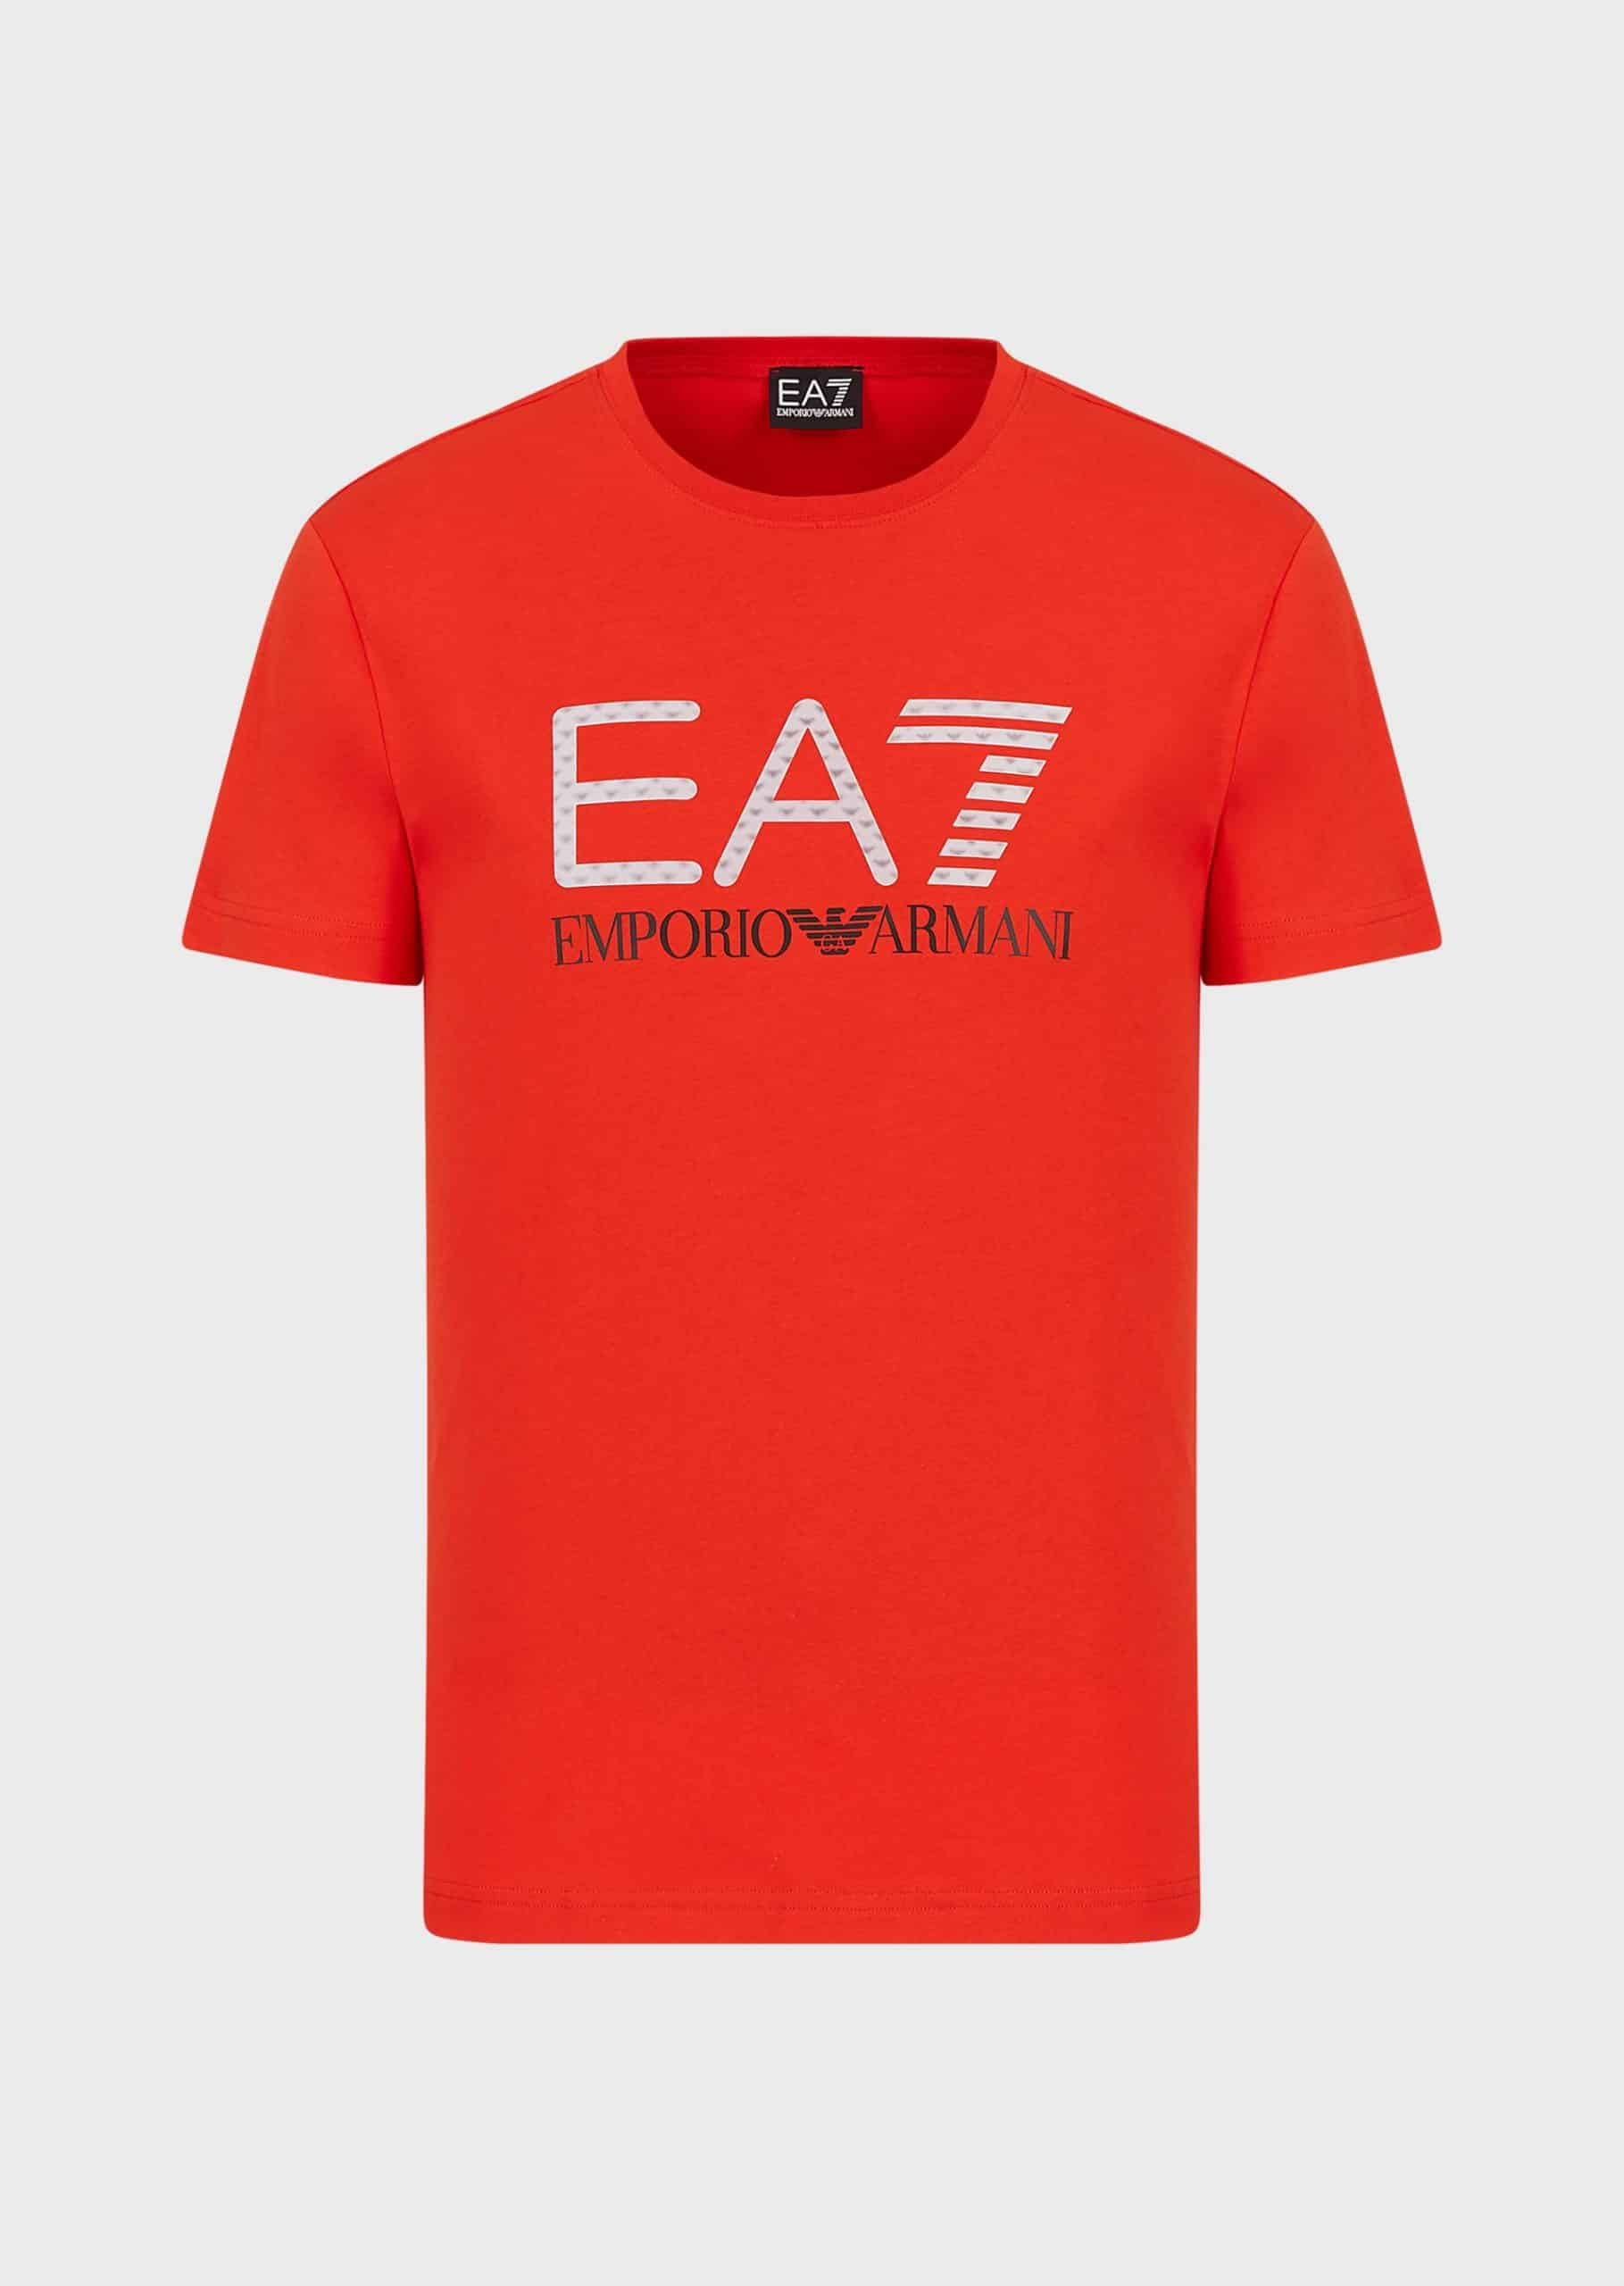 Armani EA7 T-shirt 3D Logoprint Red